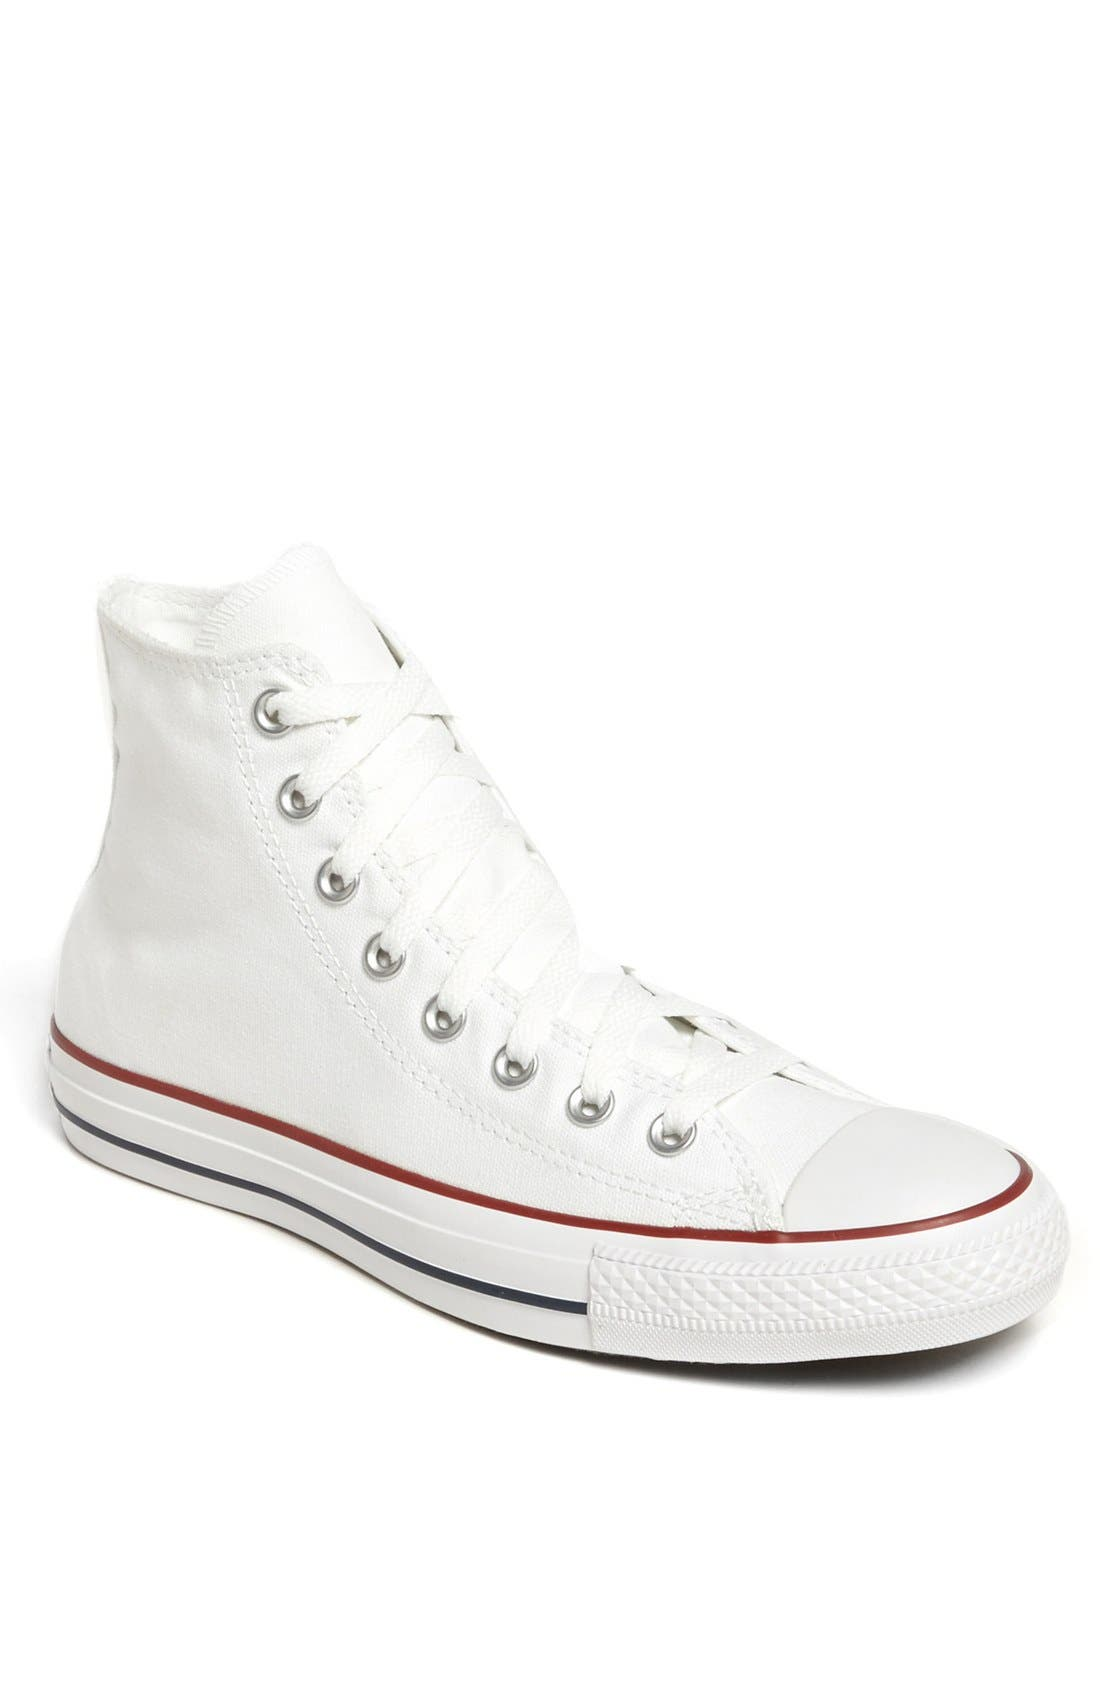 Chuck Taylor<sup>®</sup> High Top Sneaker,                         Main,                         color, OPTIC WHITE